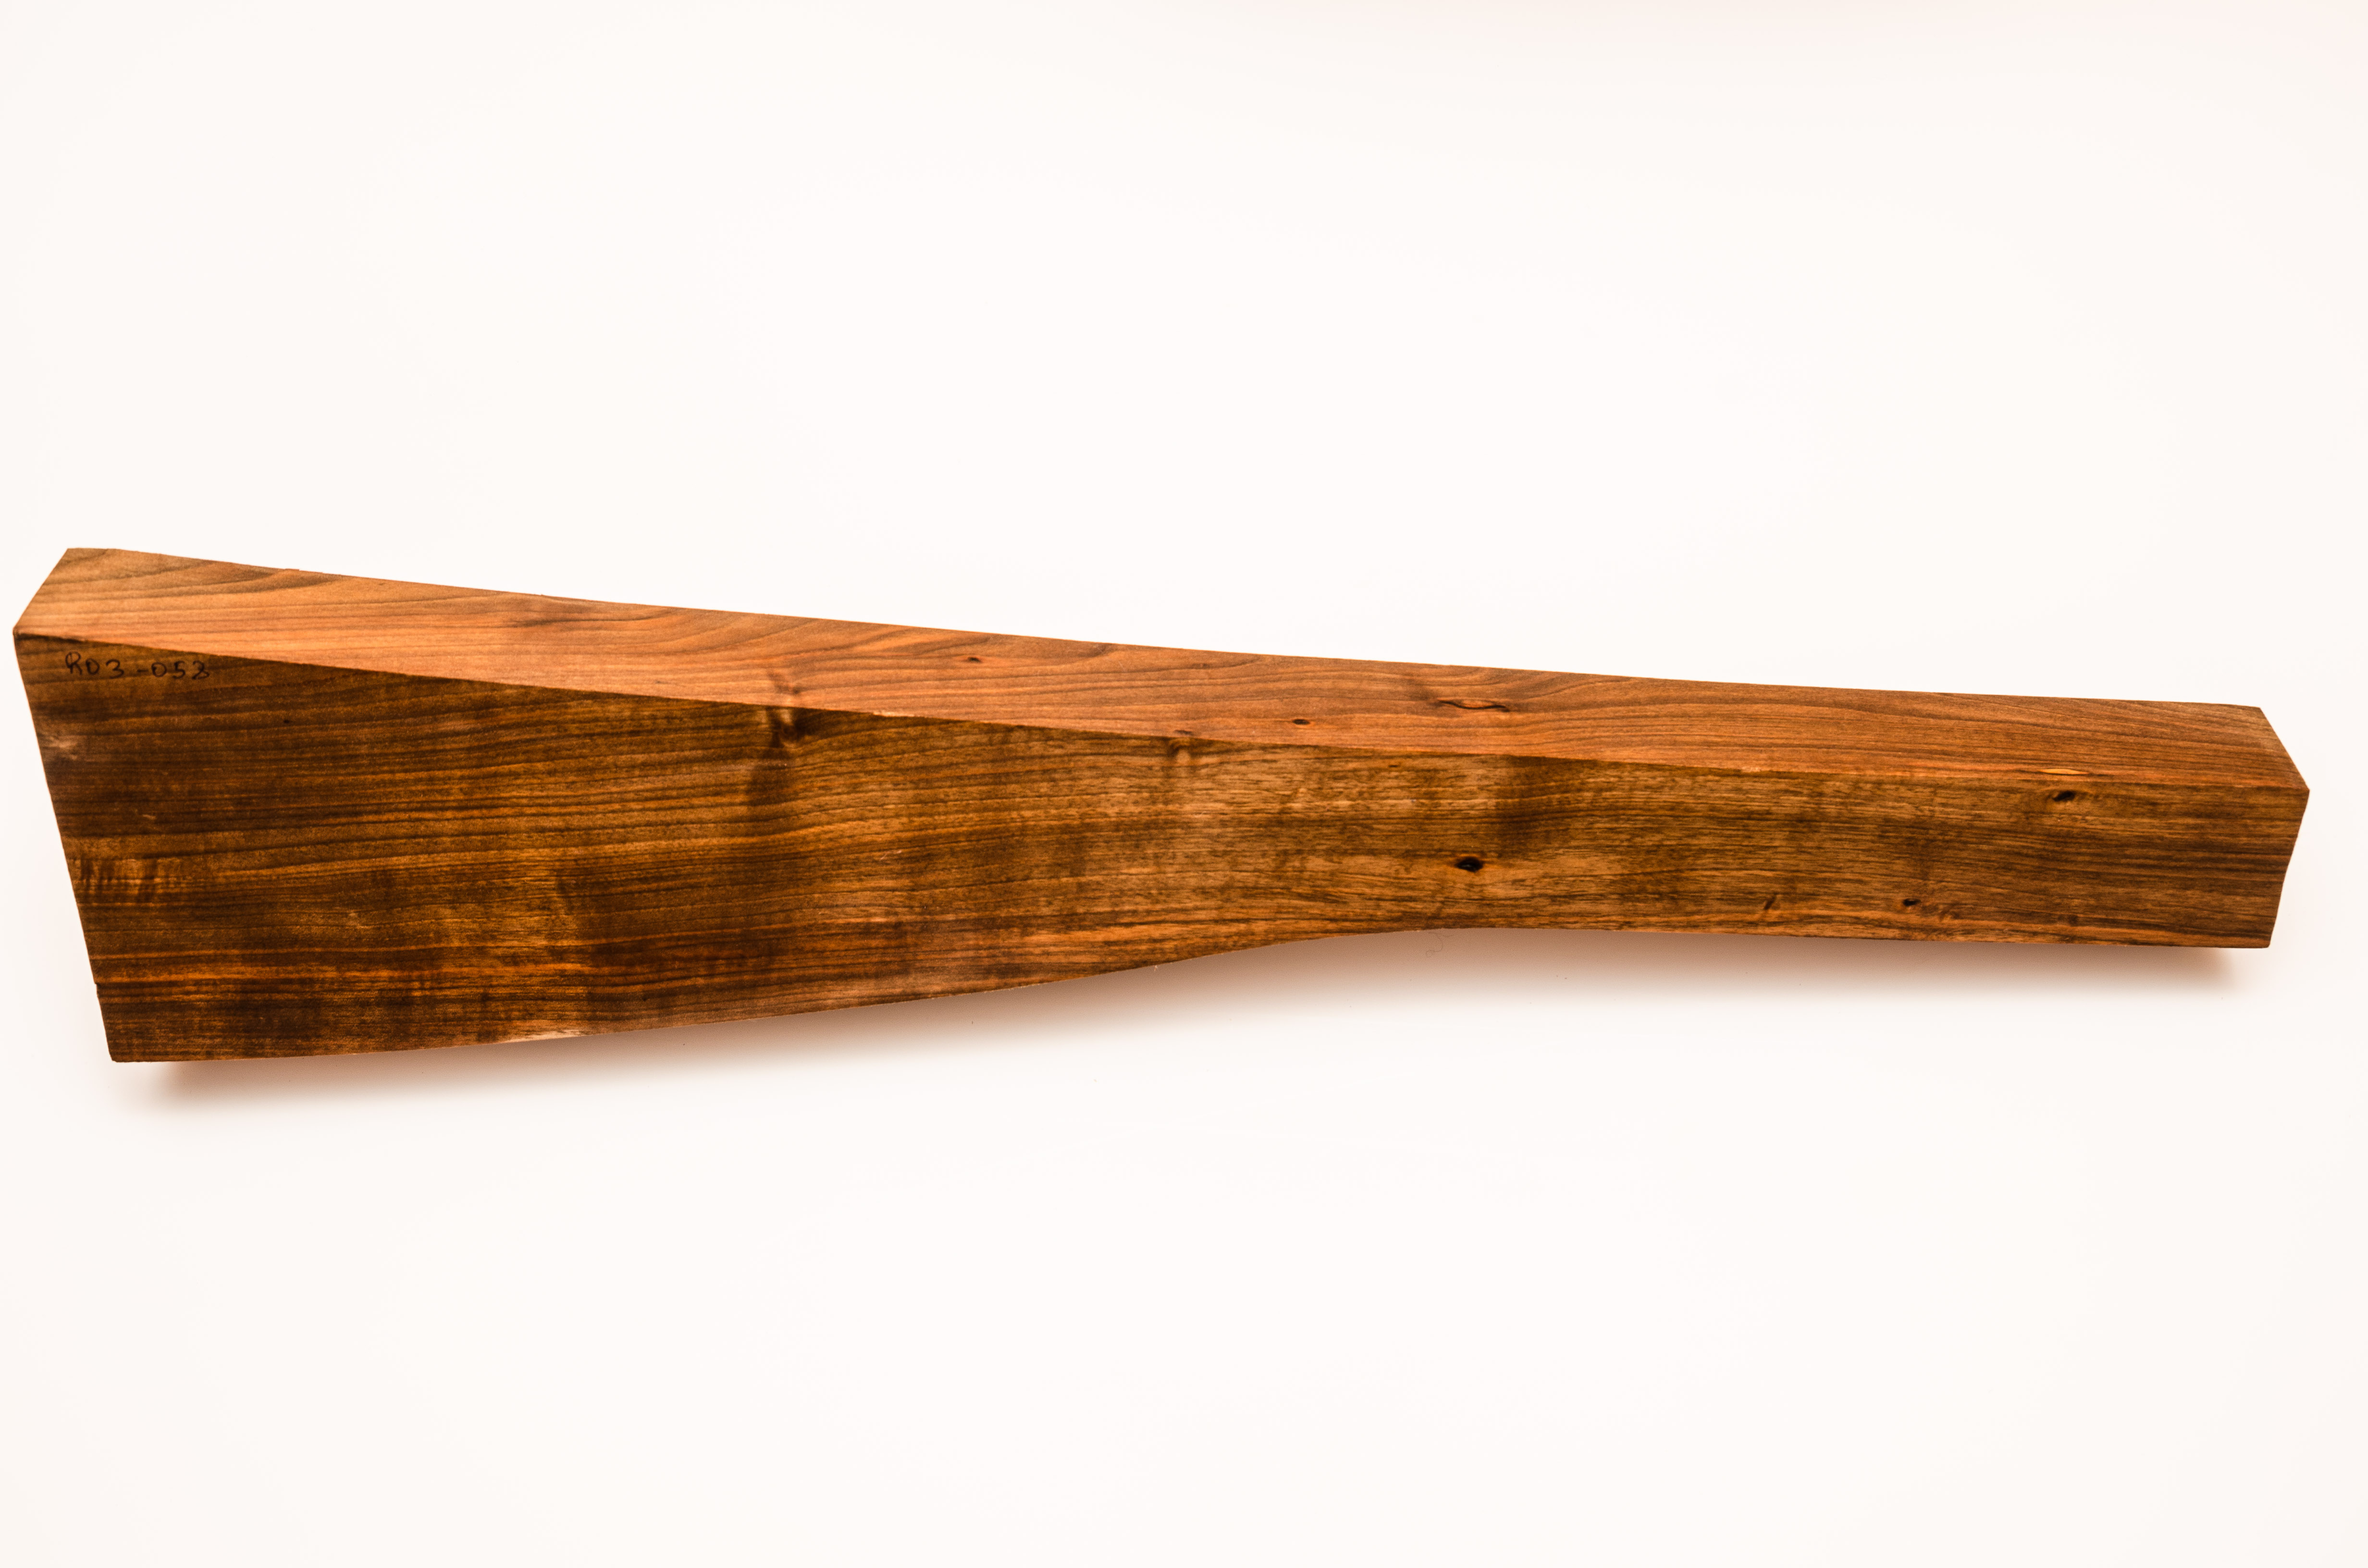 walnut_stock_blanks_for_guns_and_rifles-1531